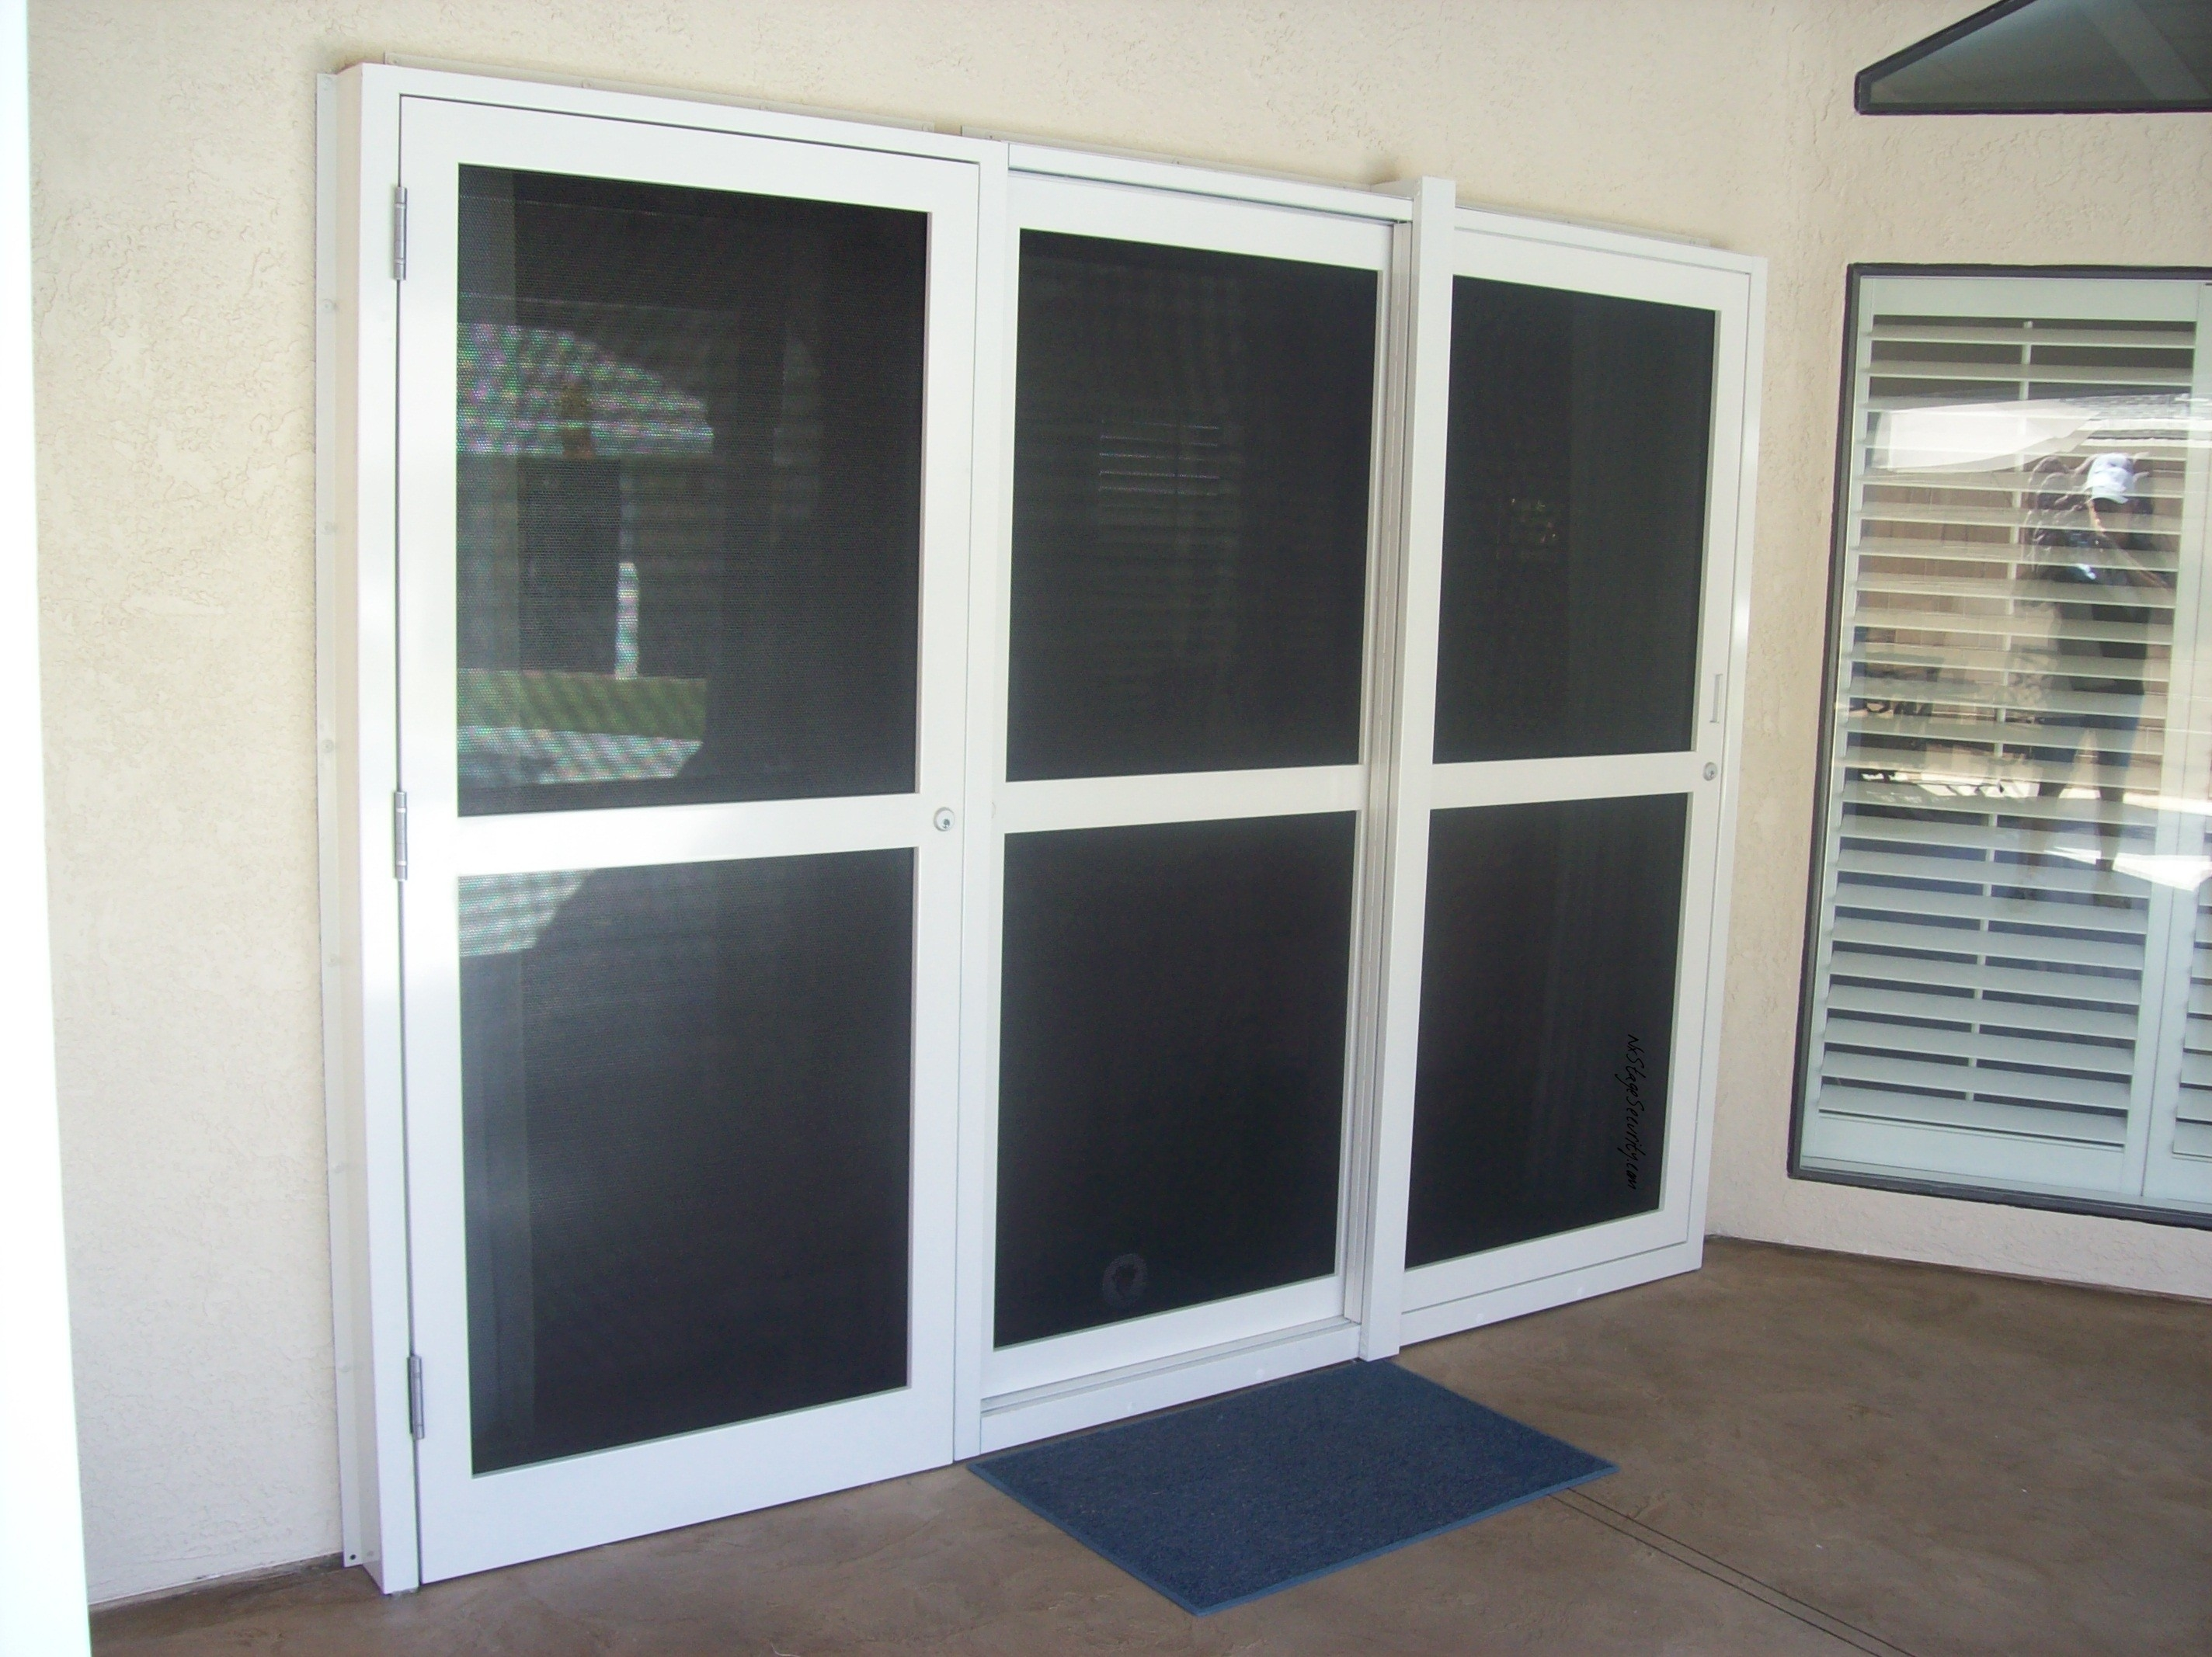 Secure Sliding Glass DoorSecure Sliding Glass Door